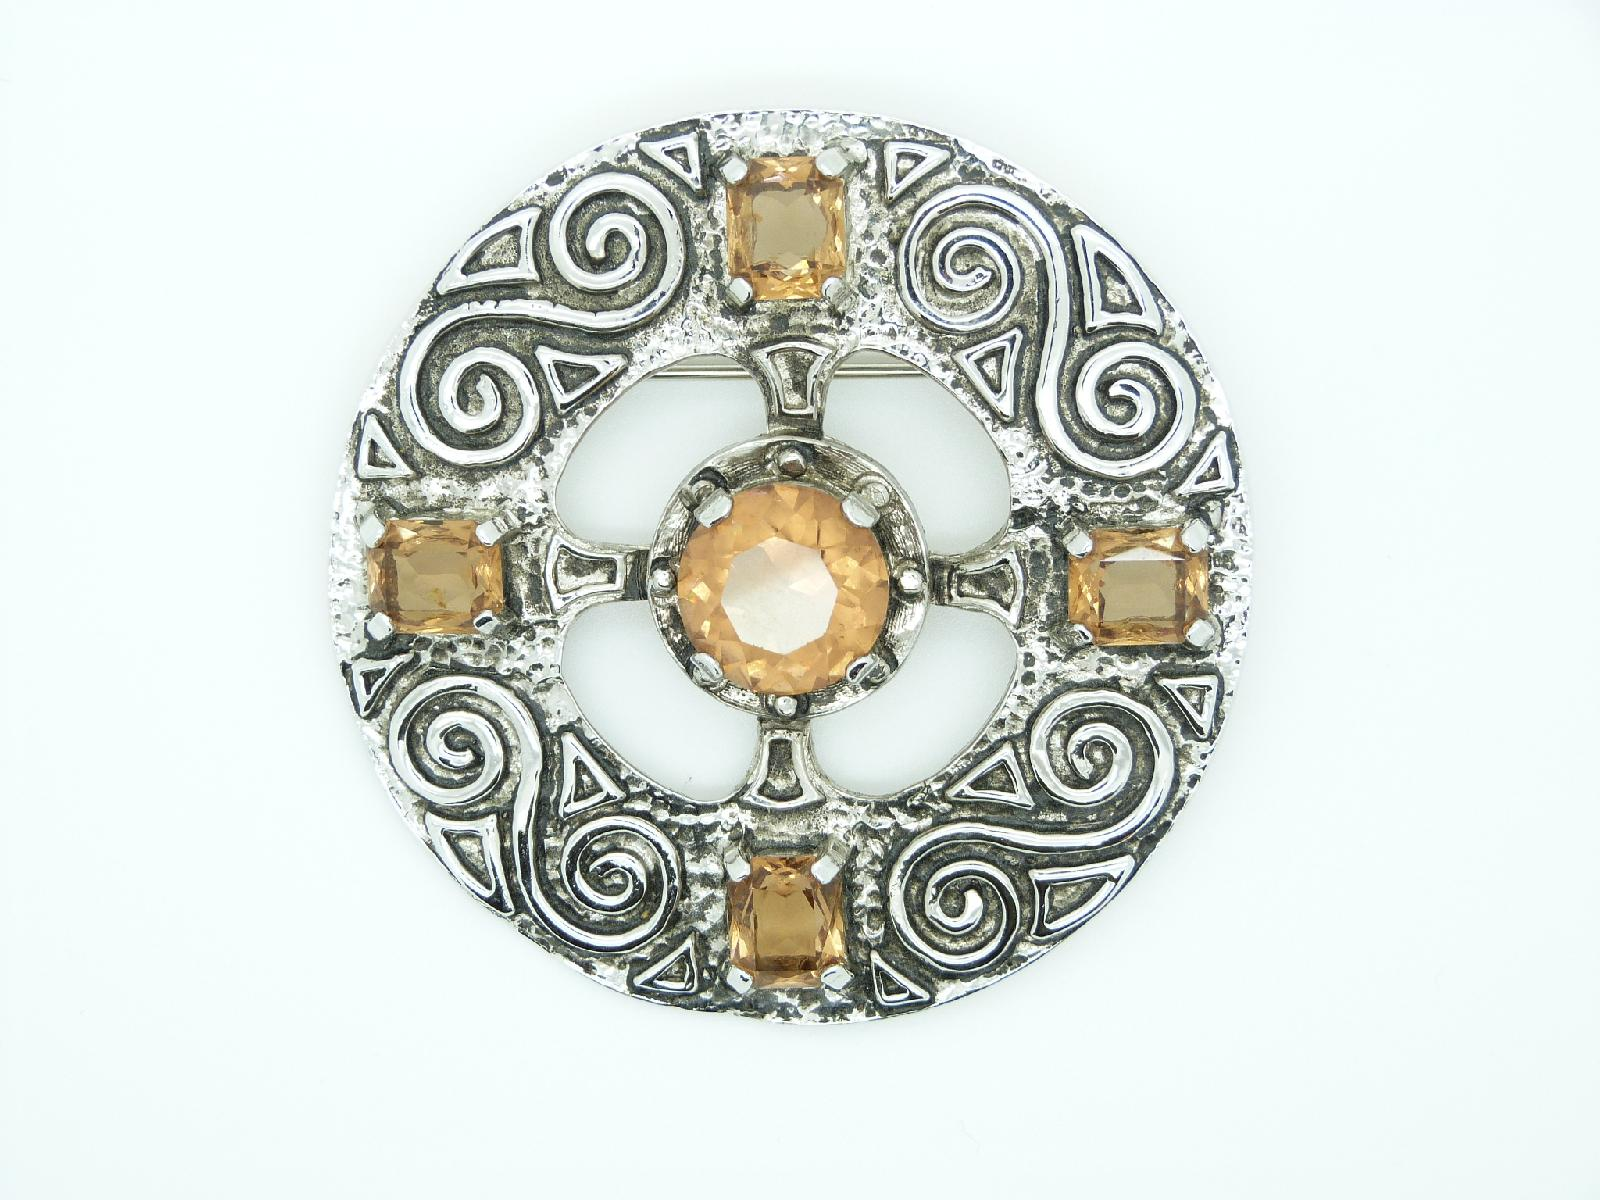 Vintage 80s Very Large Celtic Design Citrine Glass Stone Statement Brooch